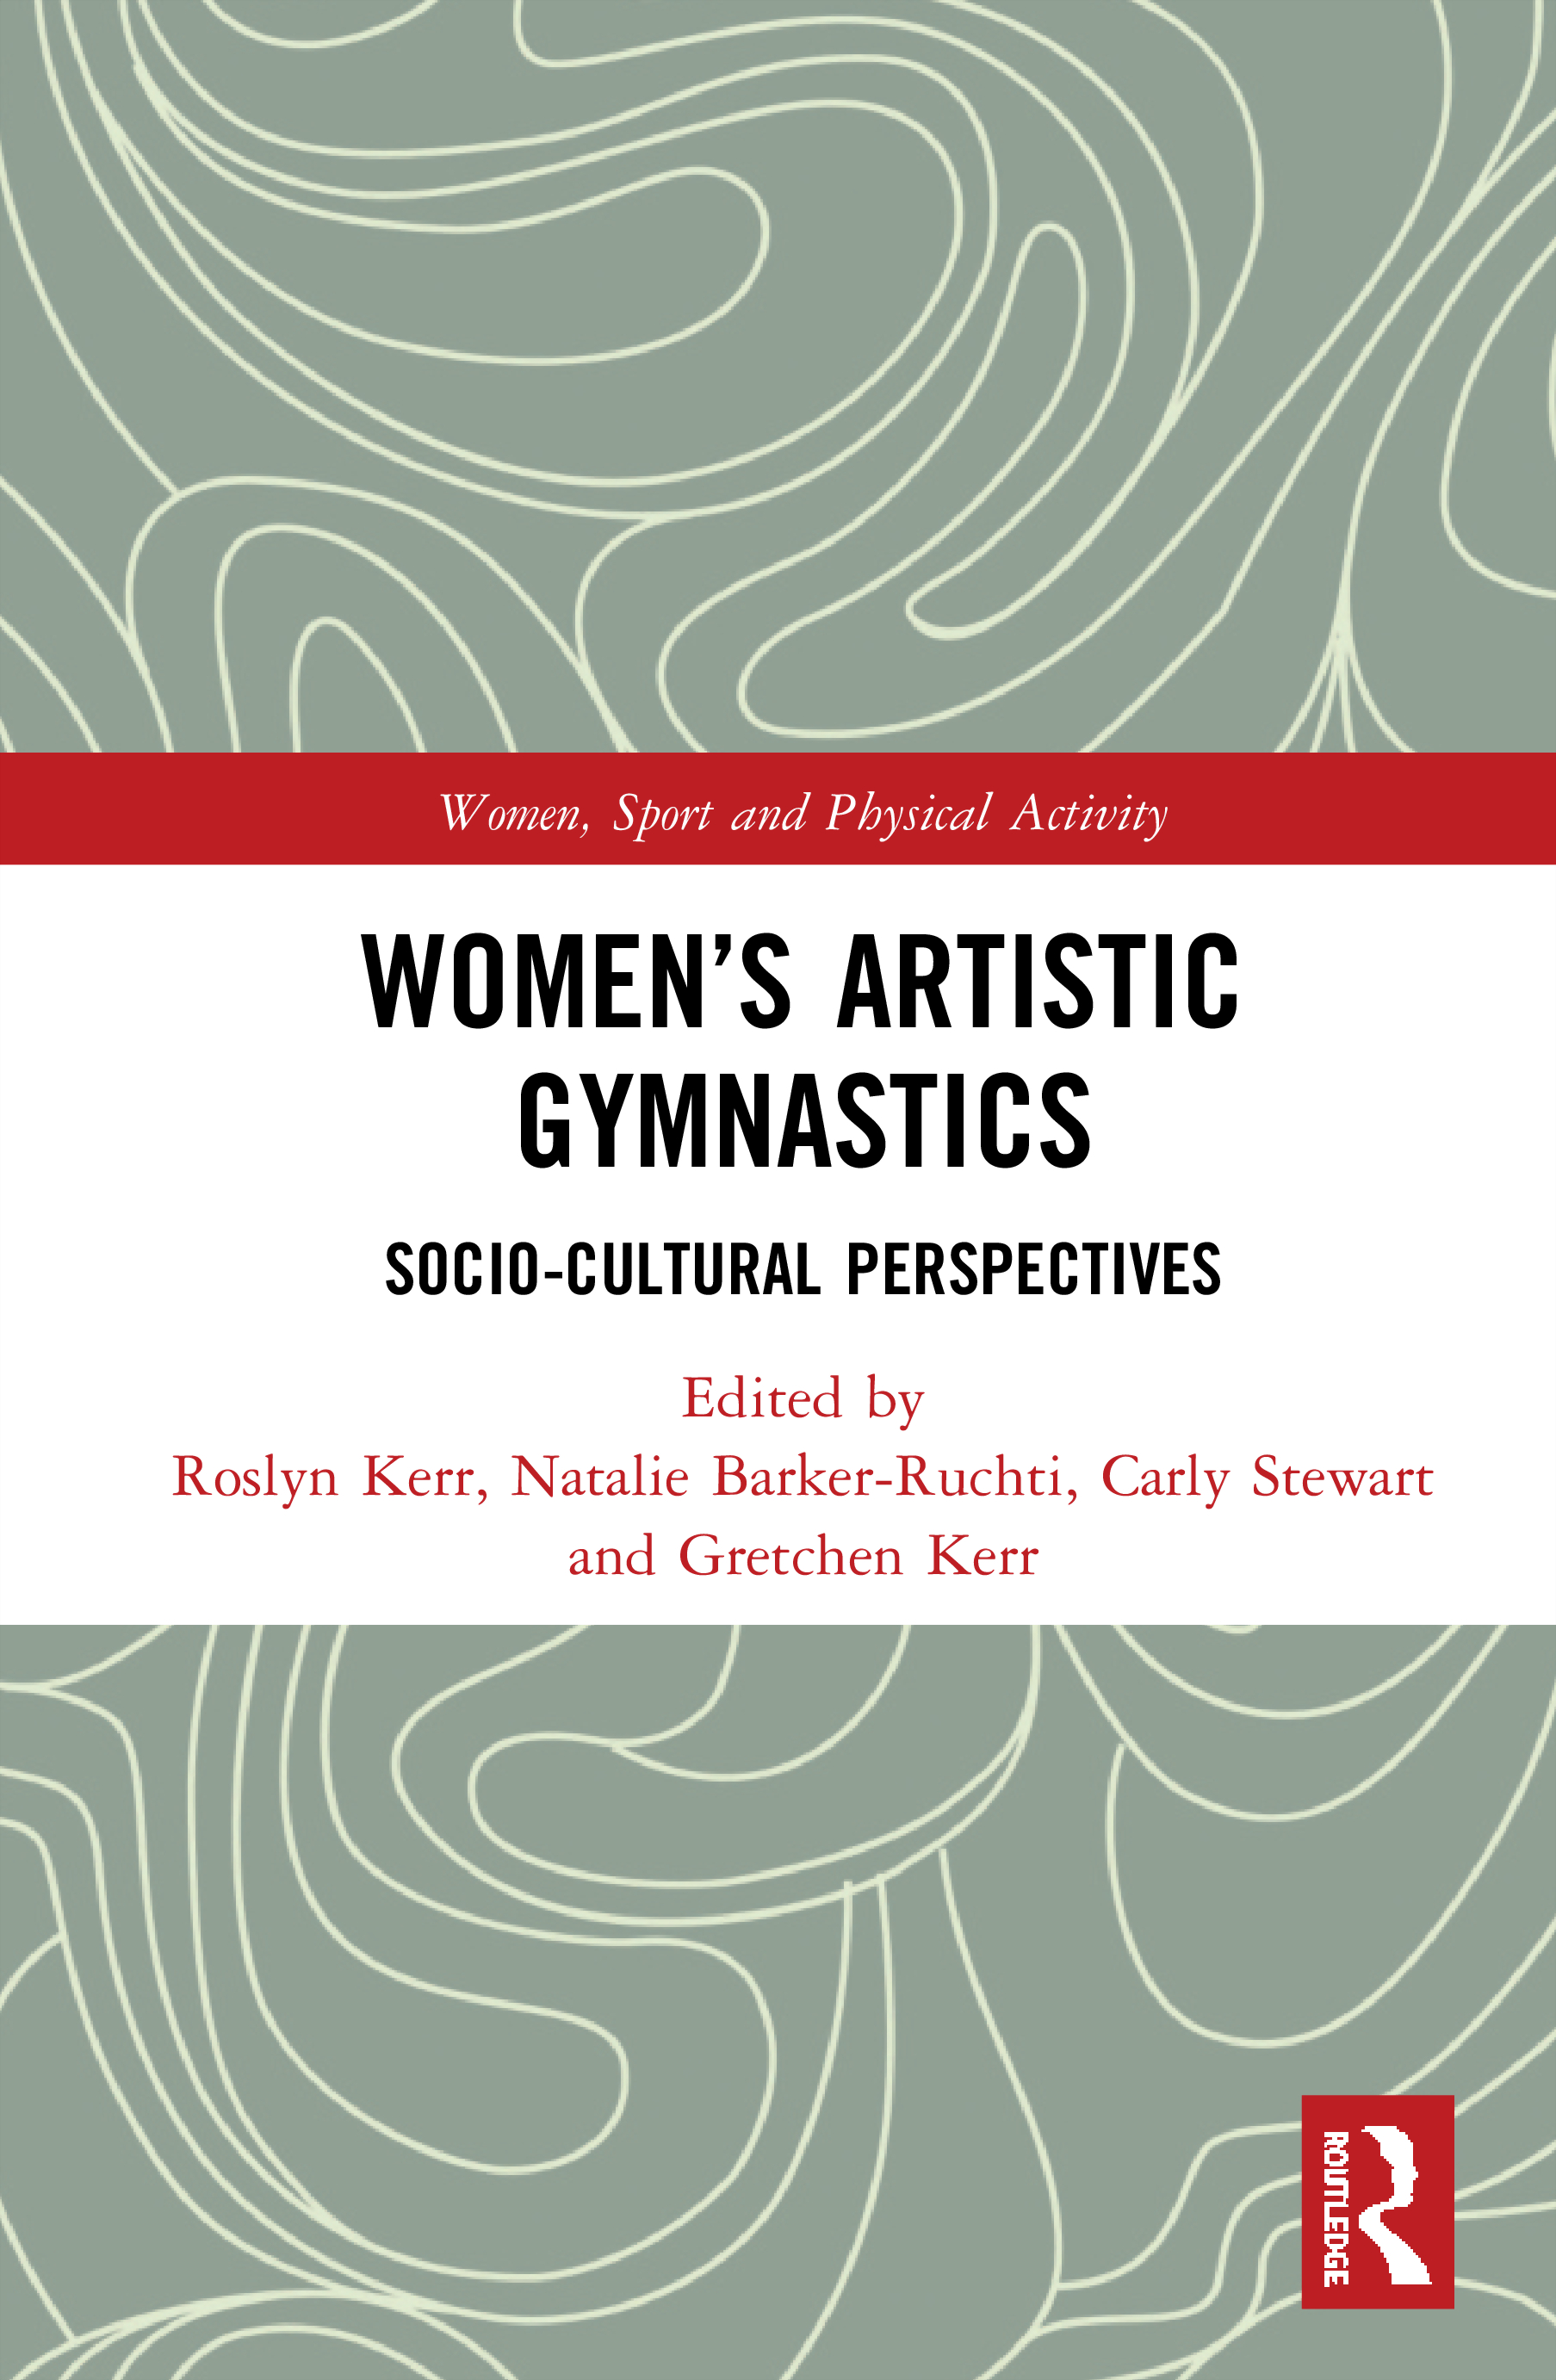 Women's Artistic Gymnastics: Socio-cultural Perspectives, 1st Edition (Hardback) book cover